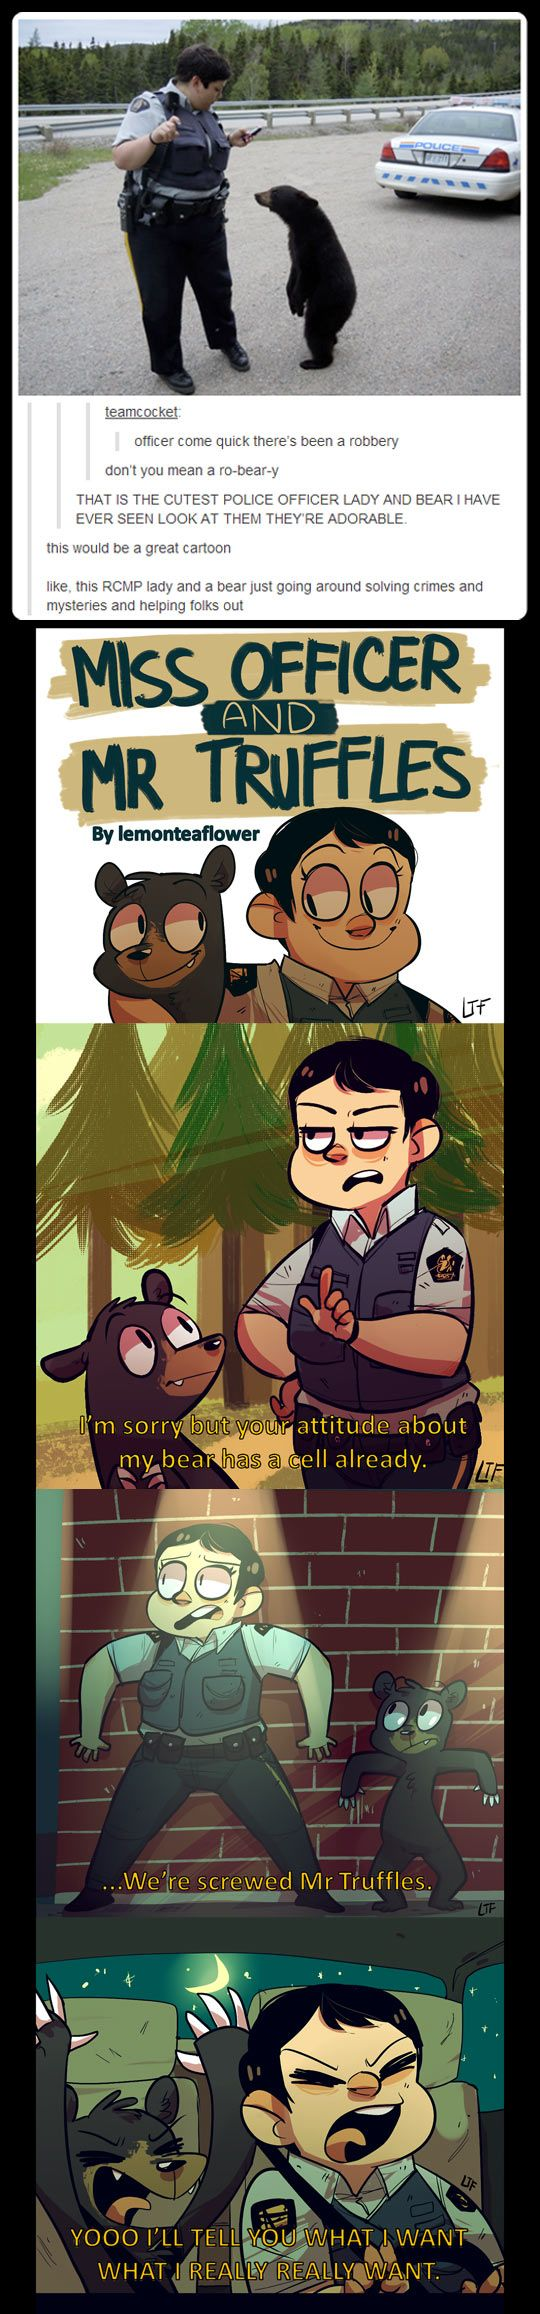 Miss Officer and Mr Truffles // funny pictures - funny photos - funny images - funny pics - funny quotes - #lol #humor #funnypictures